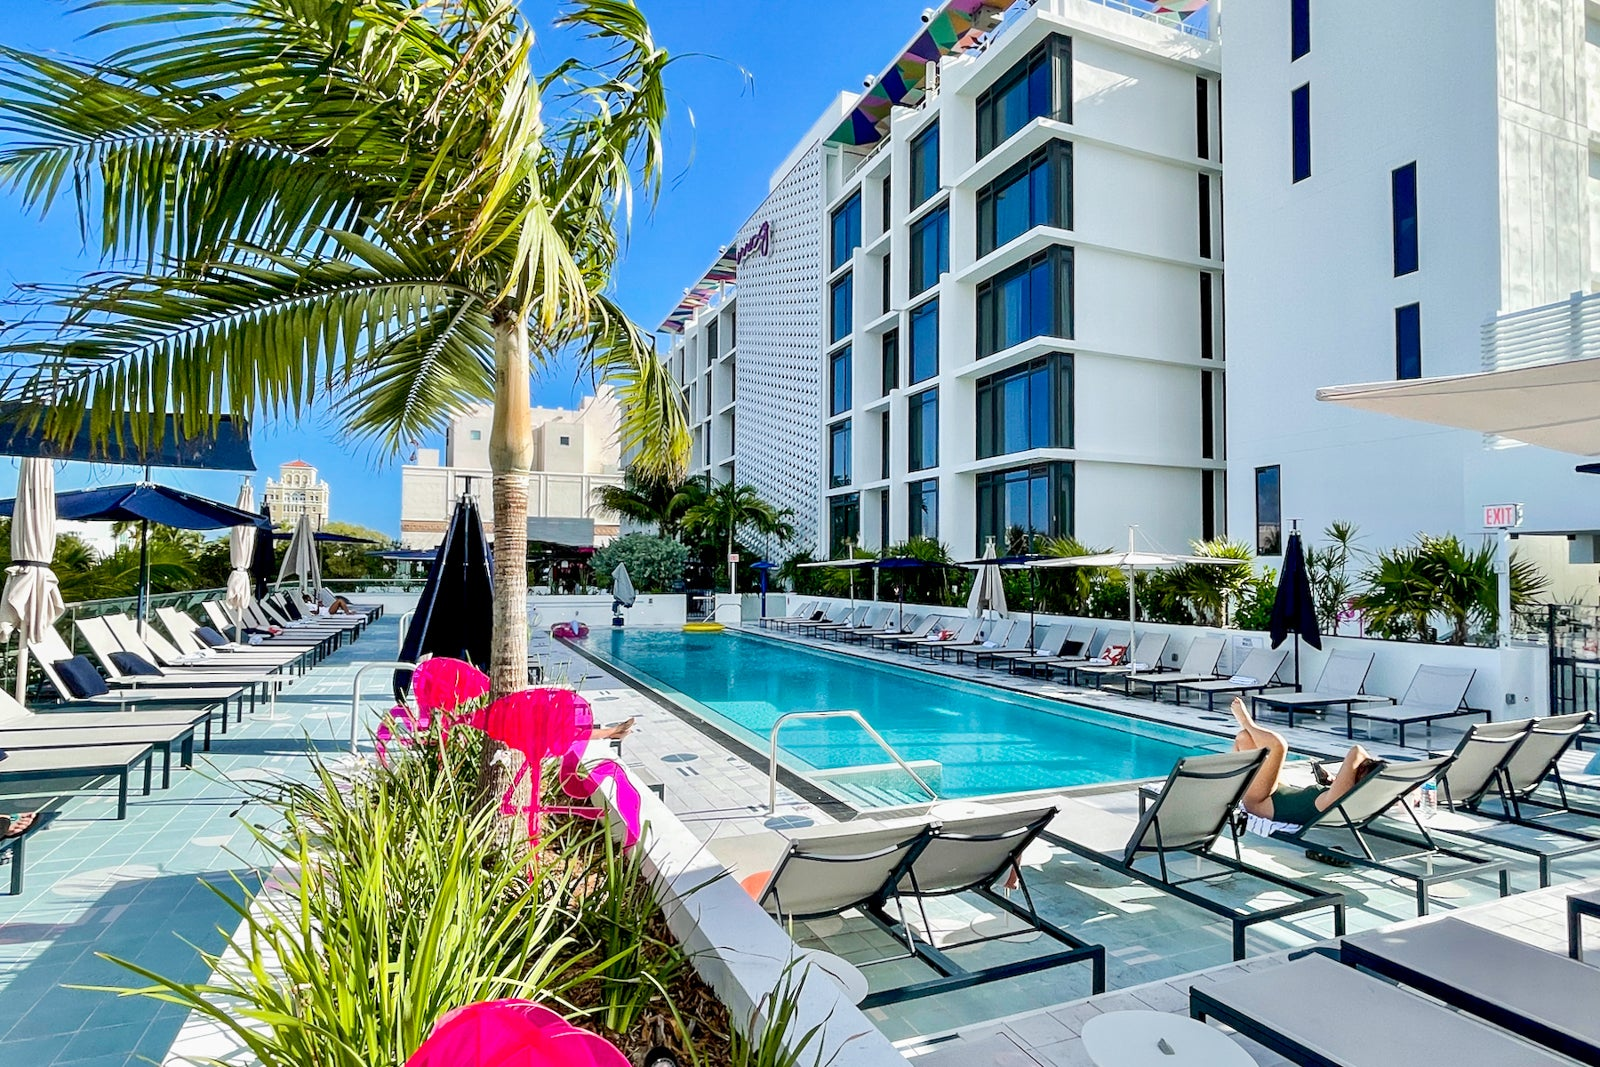 First look: Moxy Miami South Beach